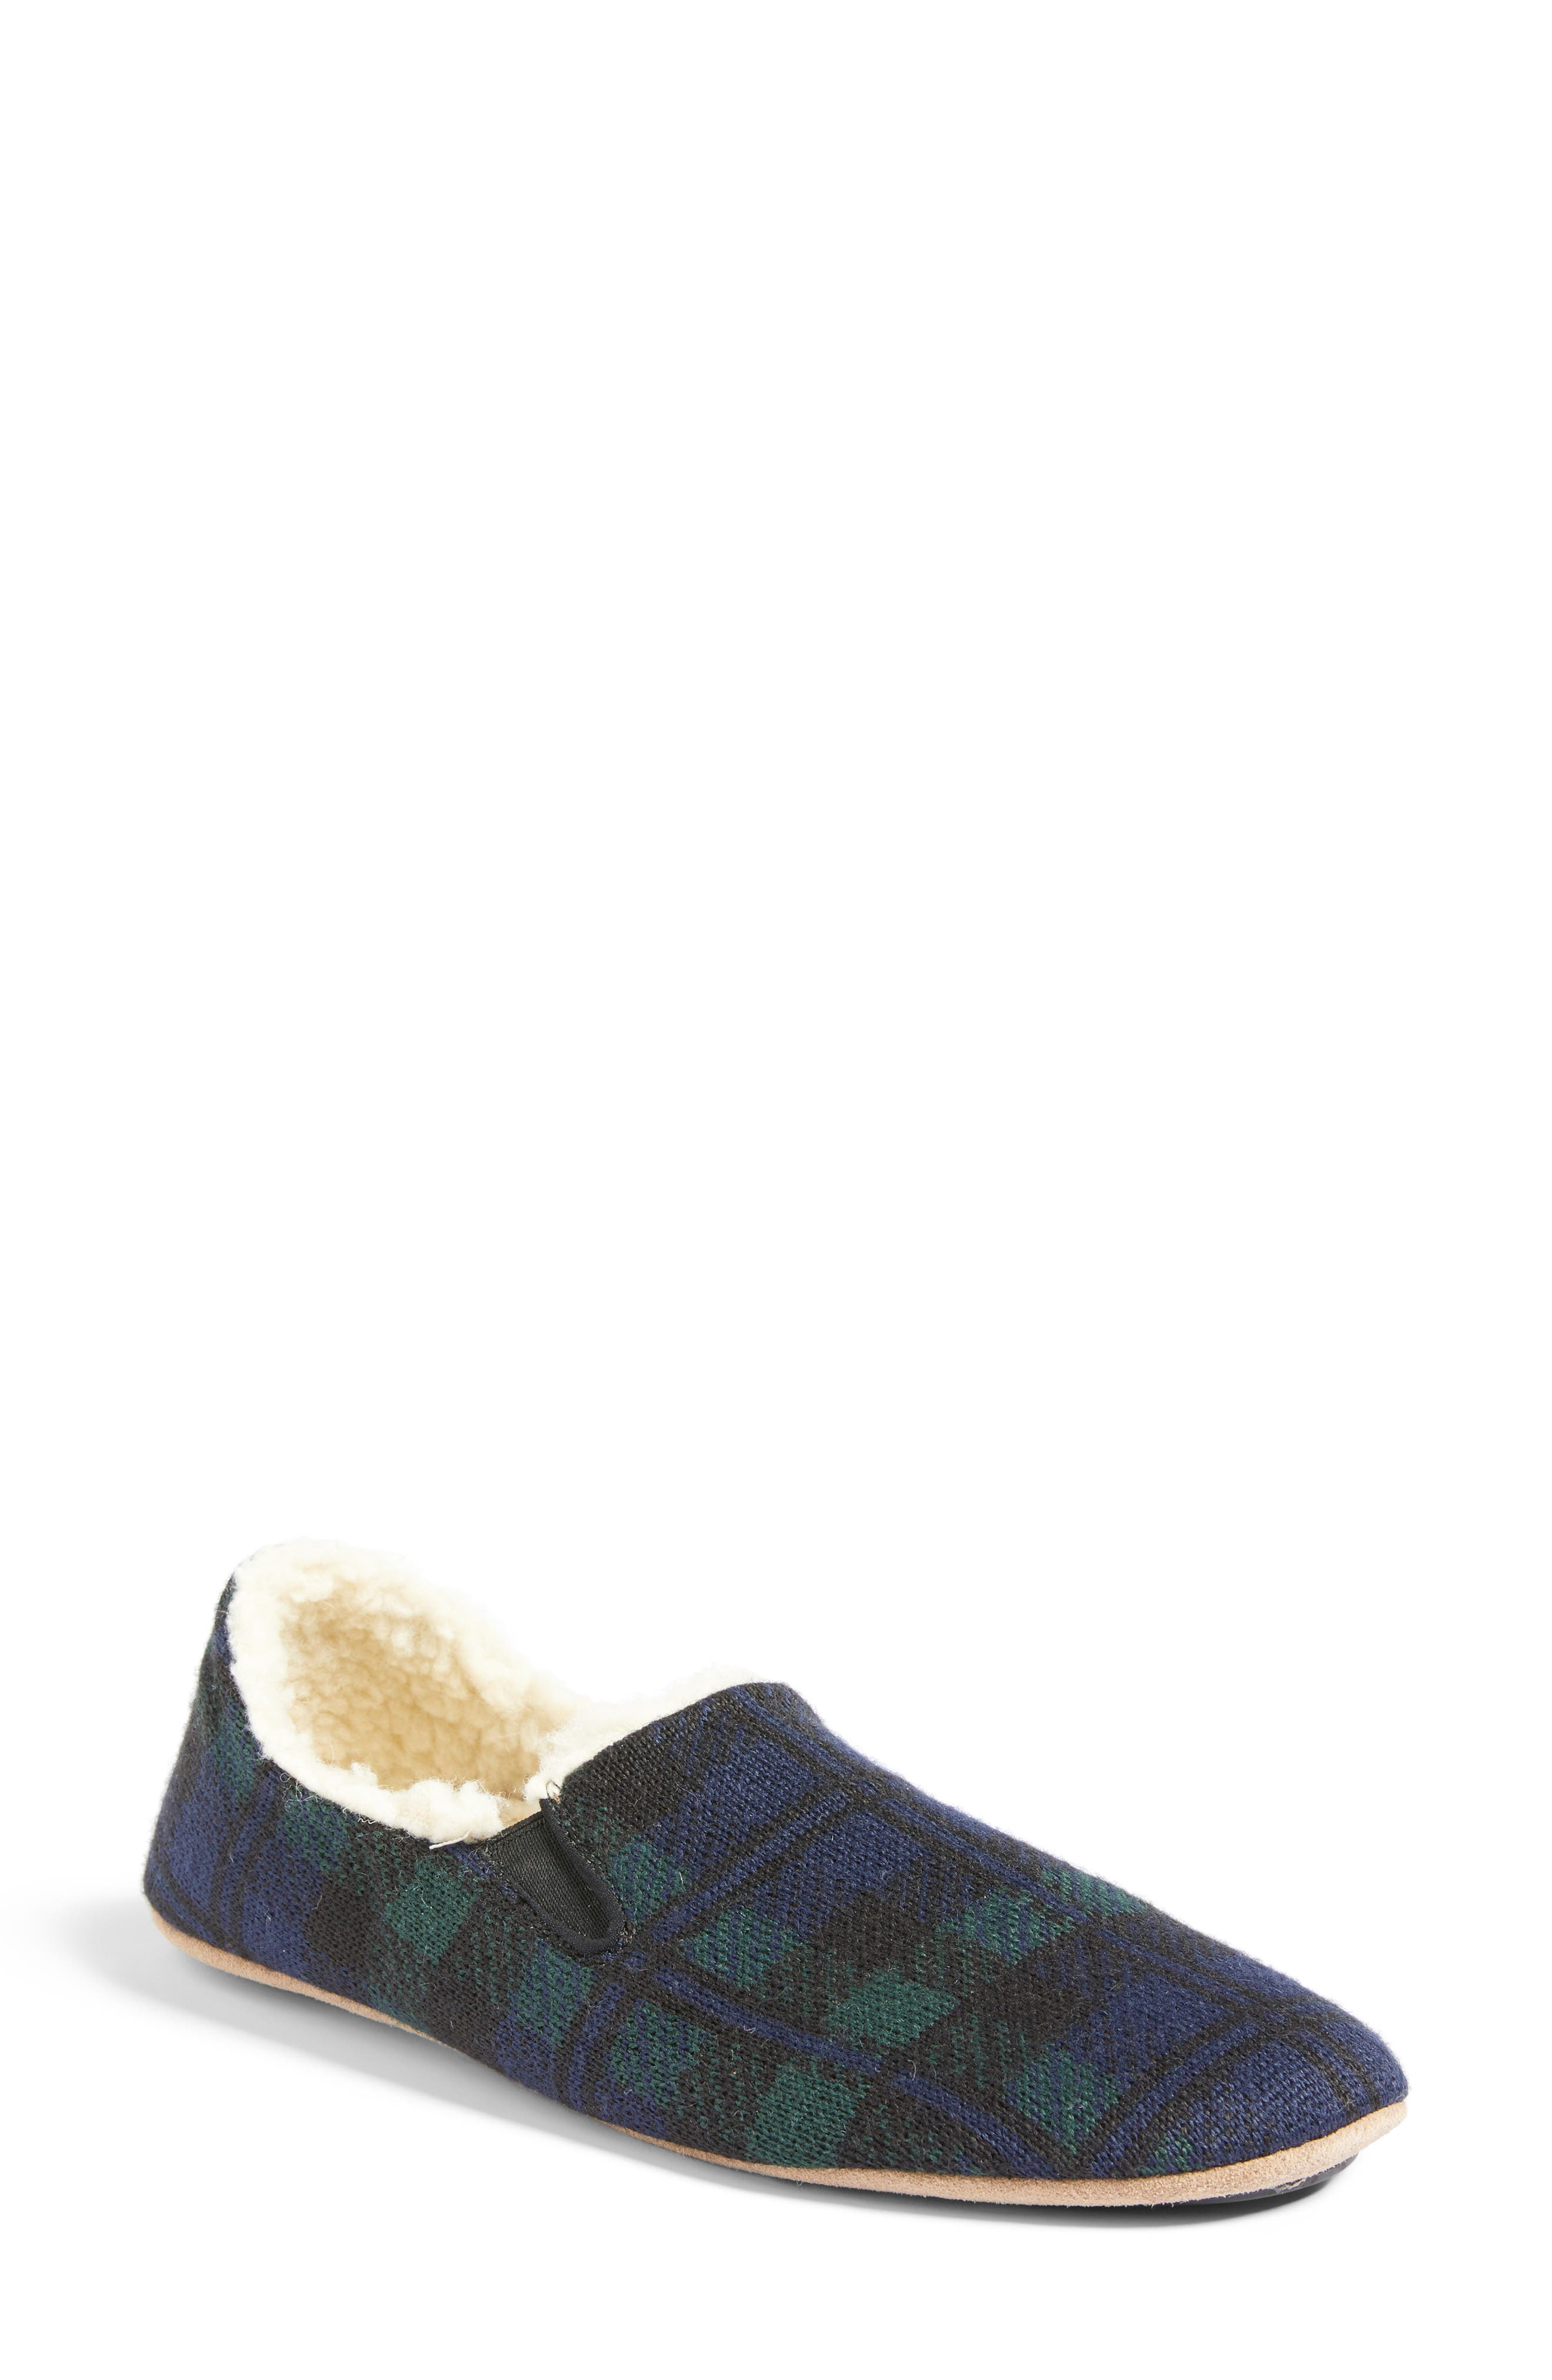 Black Watch Plaid Nomad Slippers,                             Main thumbnail 1, color,                             Navy